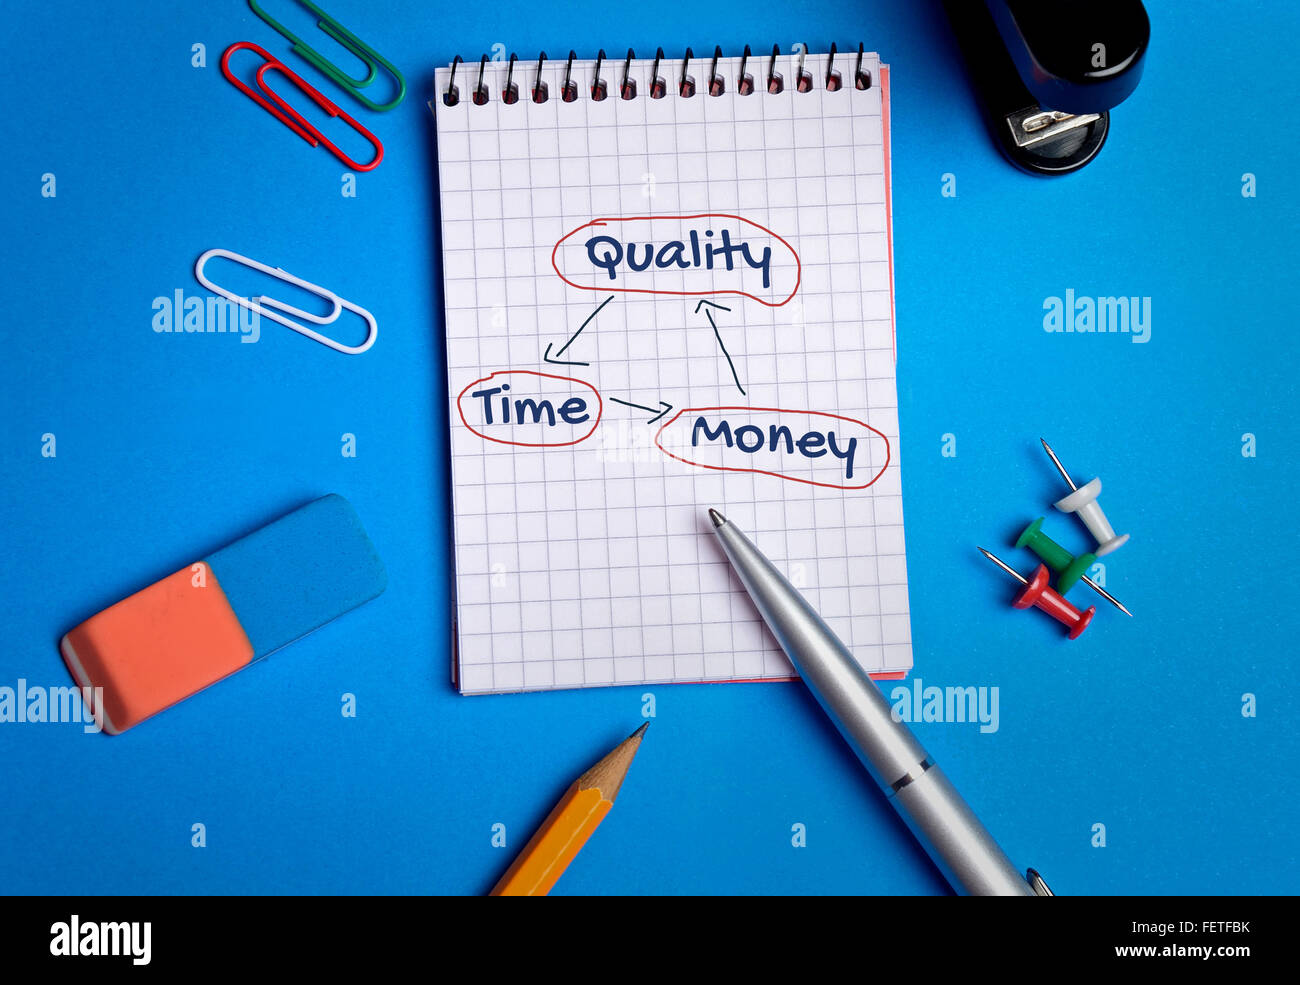 Quality Time and Money balance on notebook - Stock Image